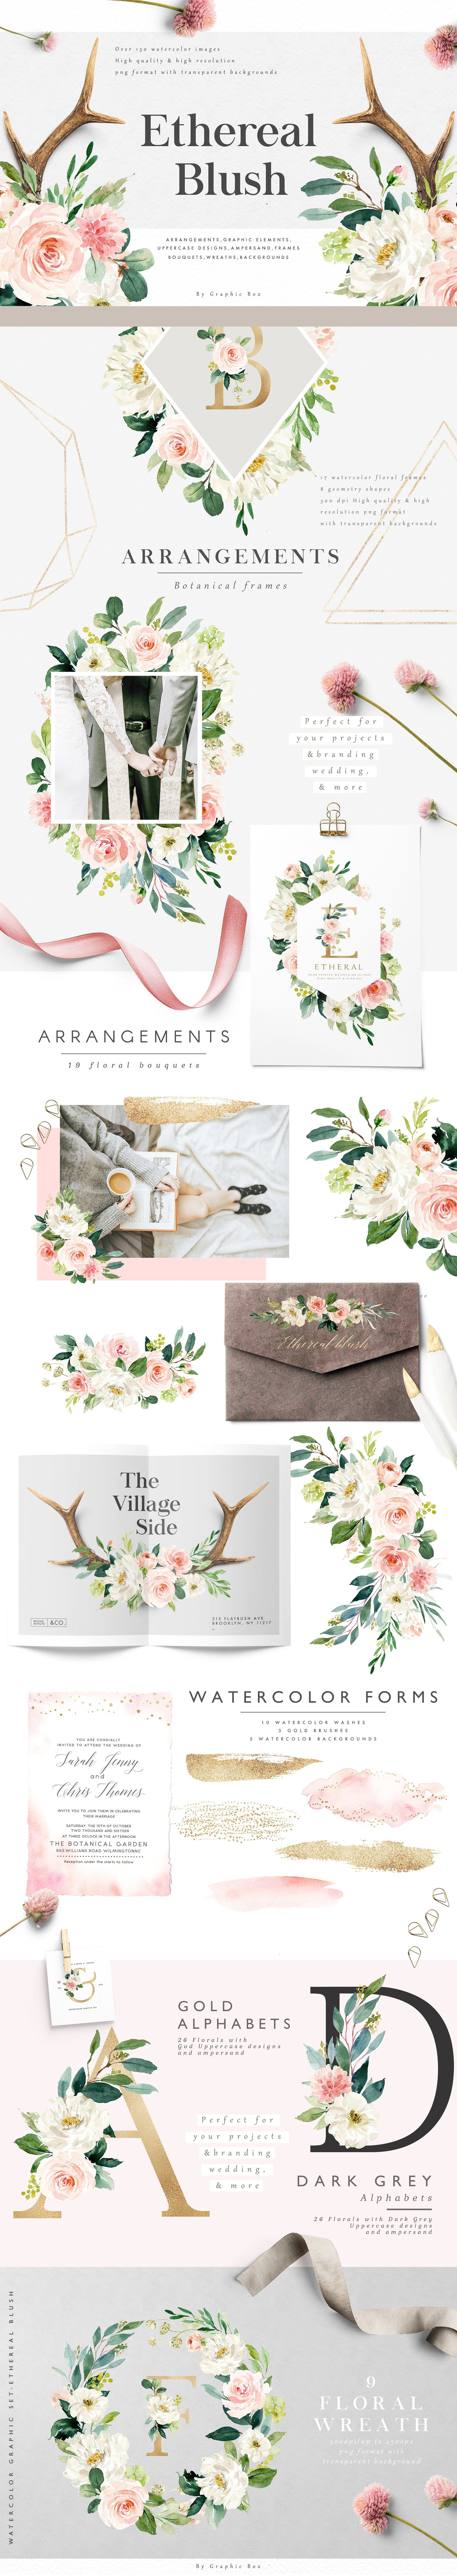 Ethereal blushflorals graphic set florals ethereal and